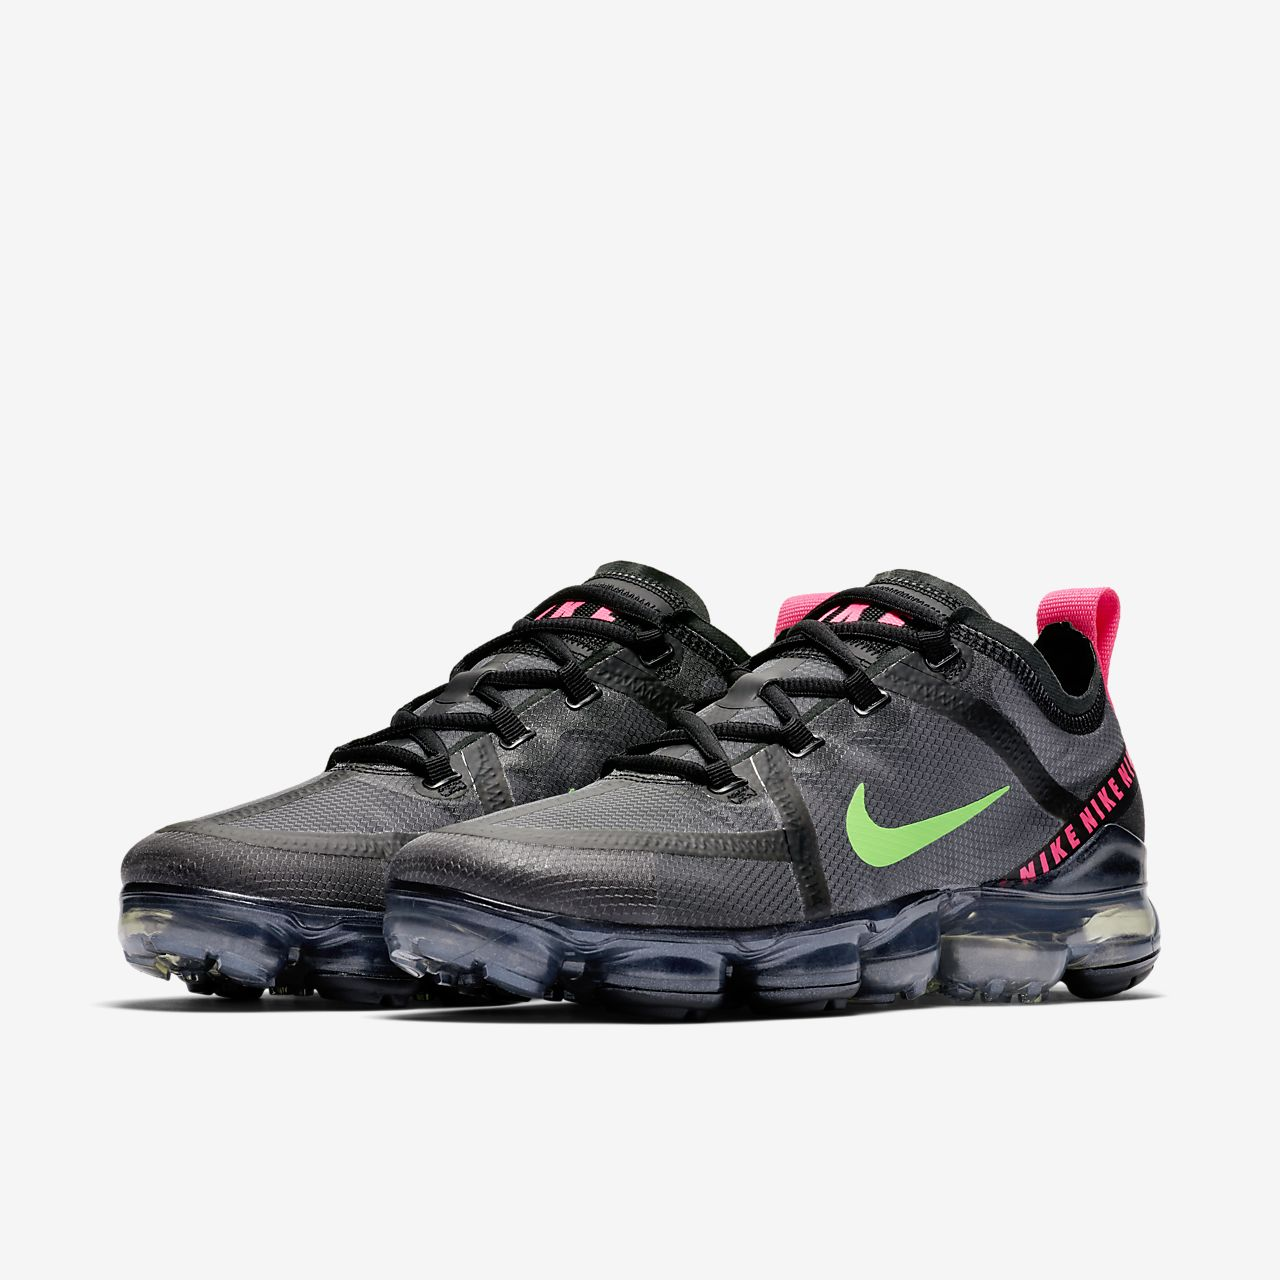 chaussure nike vapormax fausse